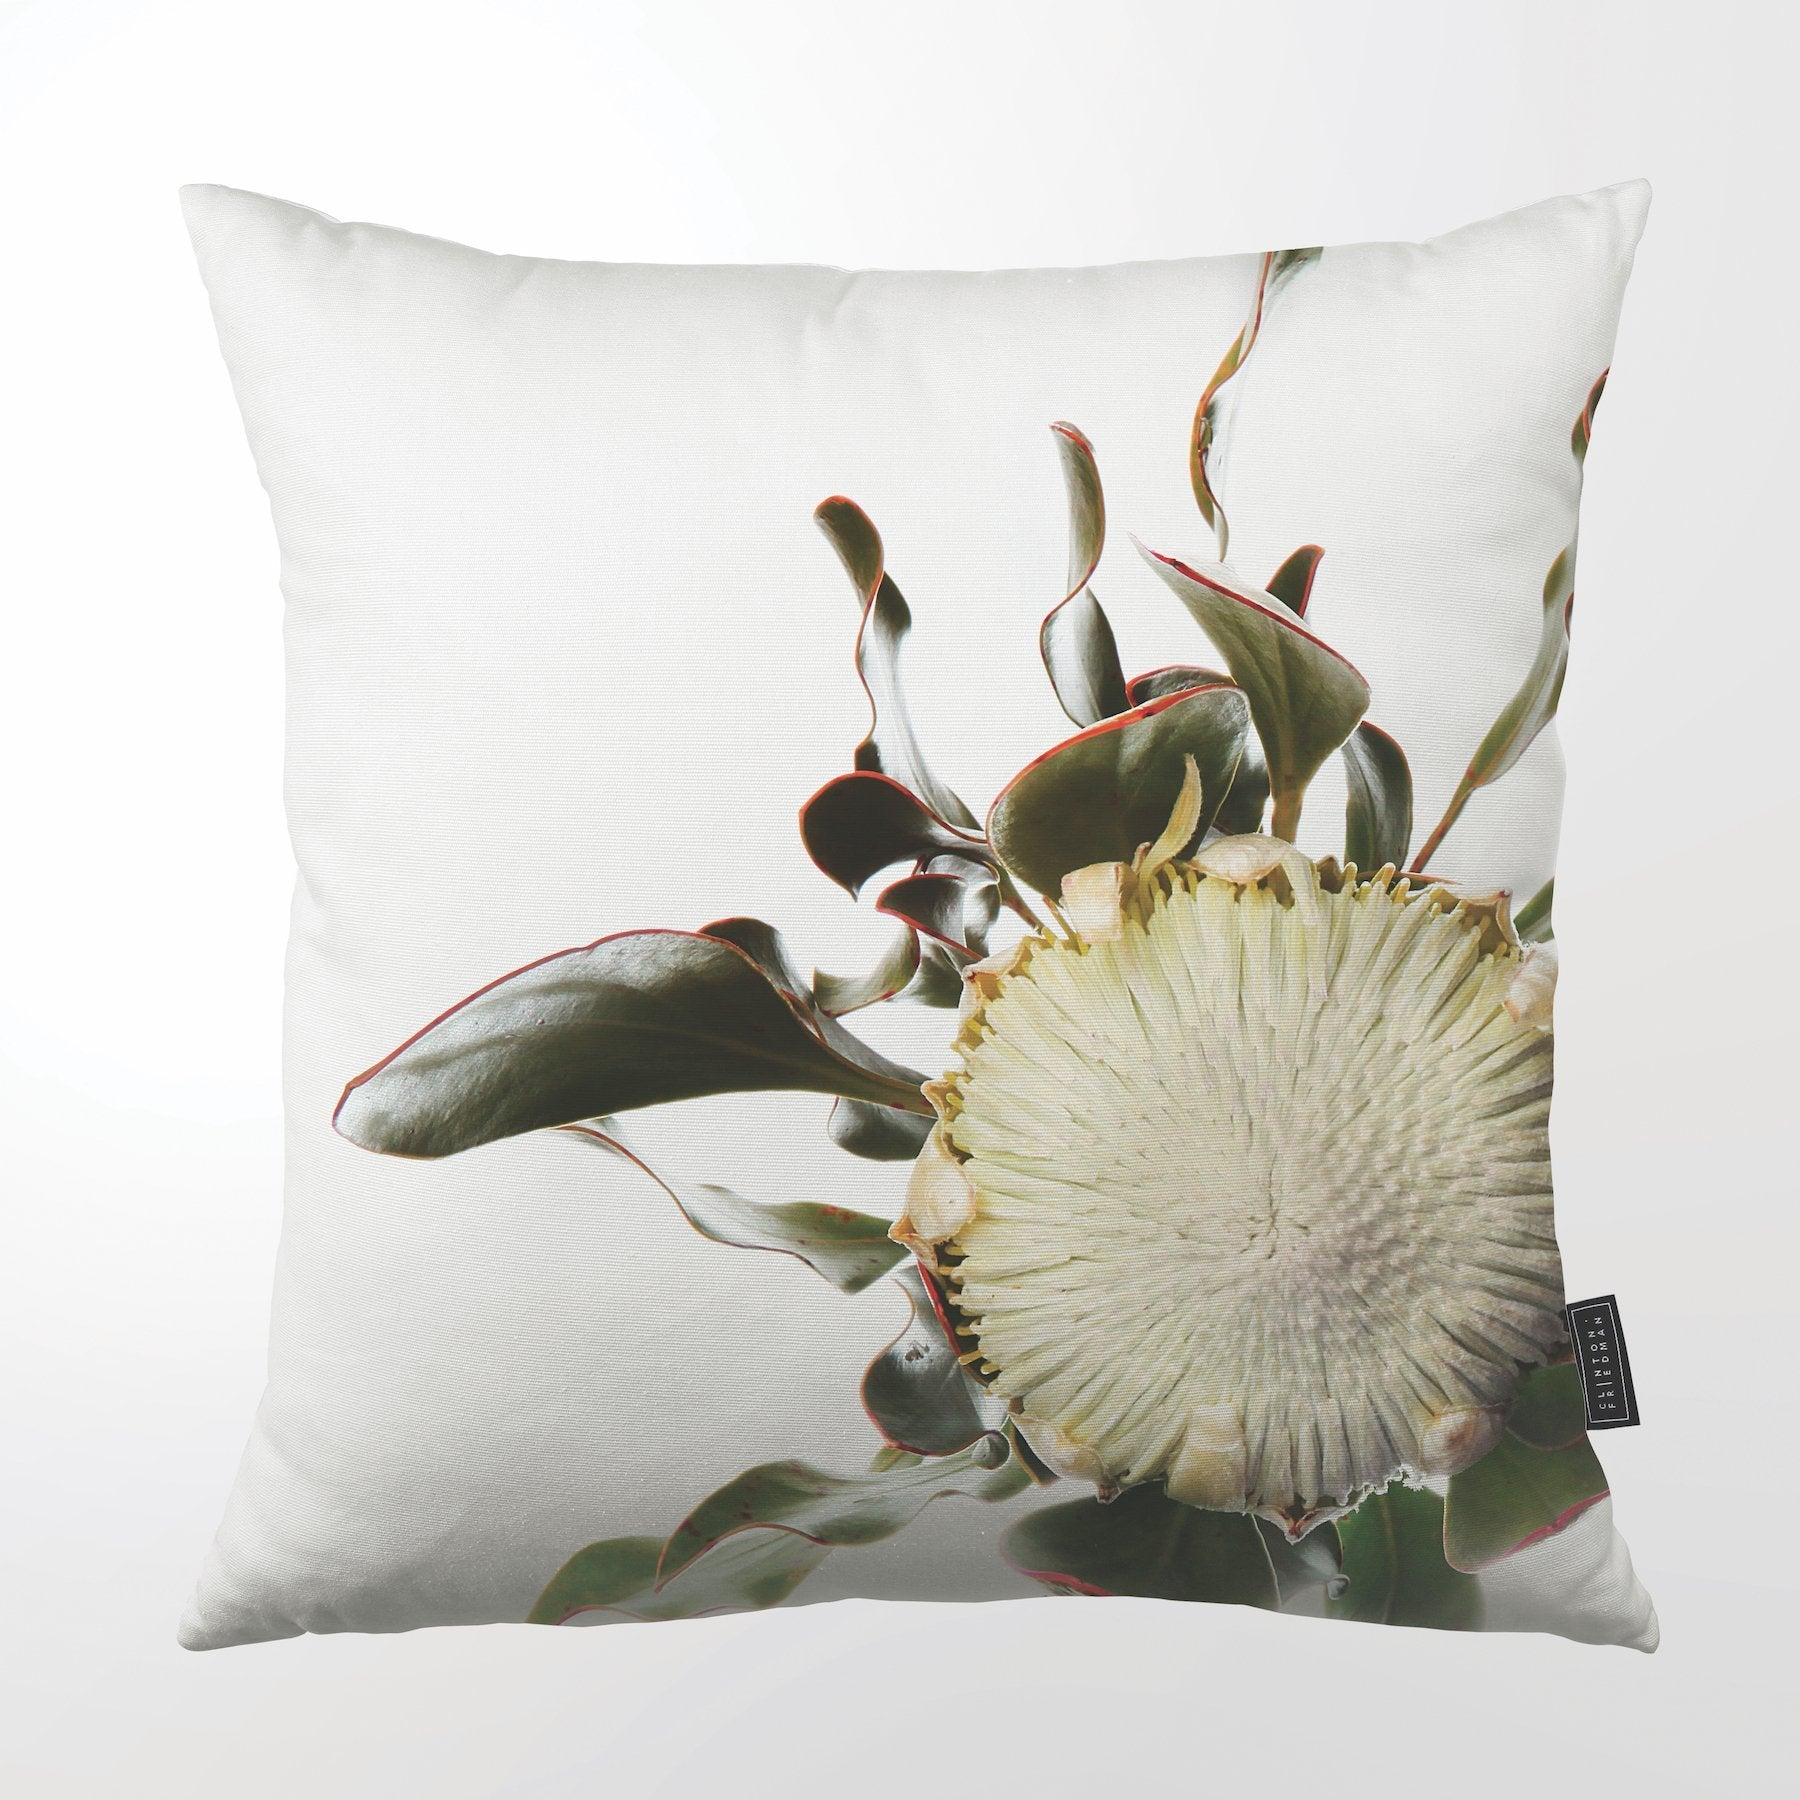 "FYNBOS PROTEA THROW PILLOW by Clinton Friedman at SARZA. 22"", CF-TP-FYN-PRO-22, Clinton Friedman, cushion cover, fynbos protea, homeware, protea, SC600Z-073, scatter cushion, throw pillow, throw pillows"